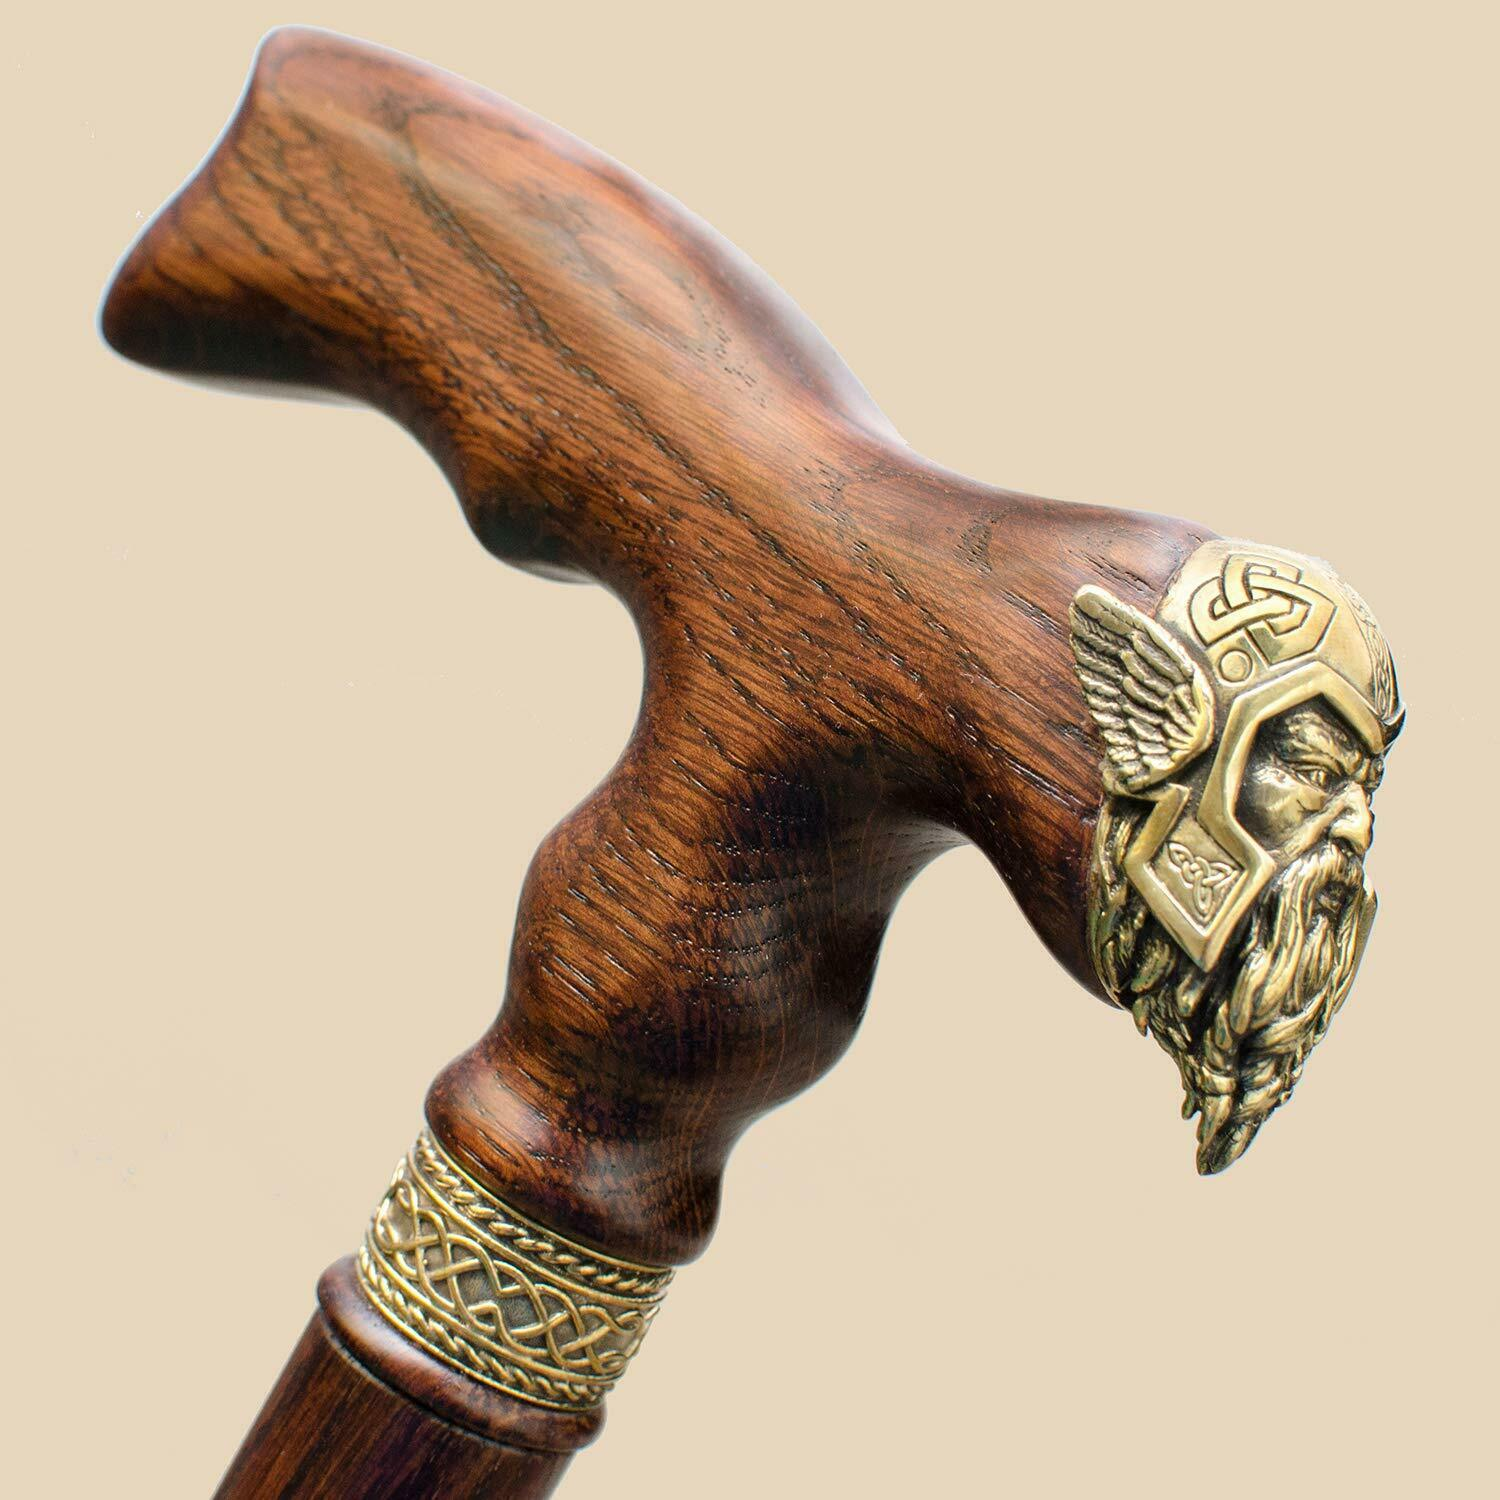 LION wooden walking stick cane Hand carved from hardwood BOXED item